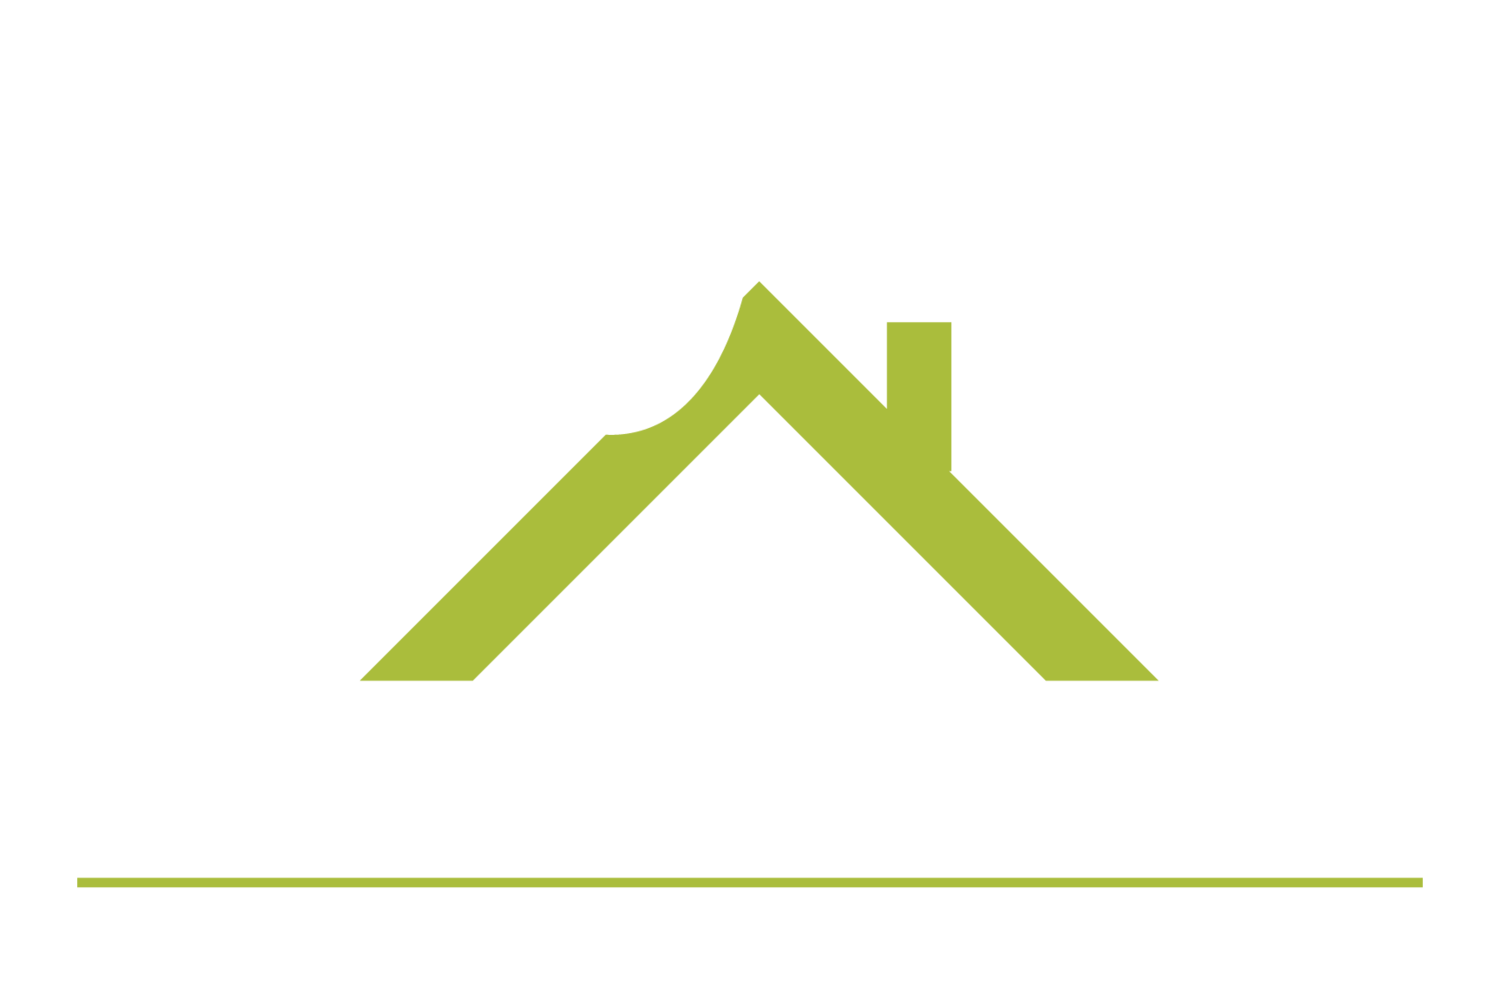 Sweet Home Community Foundation